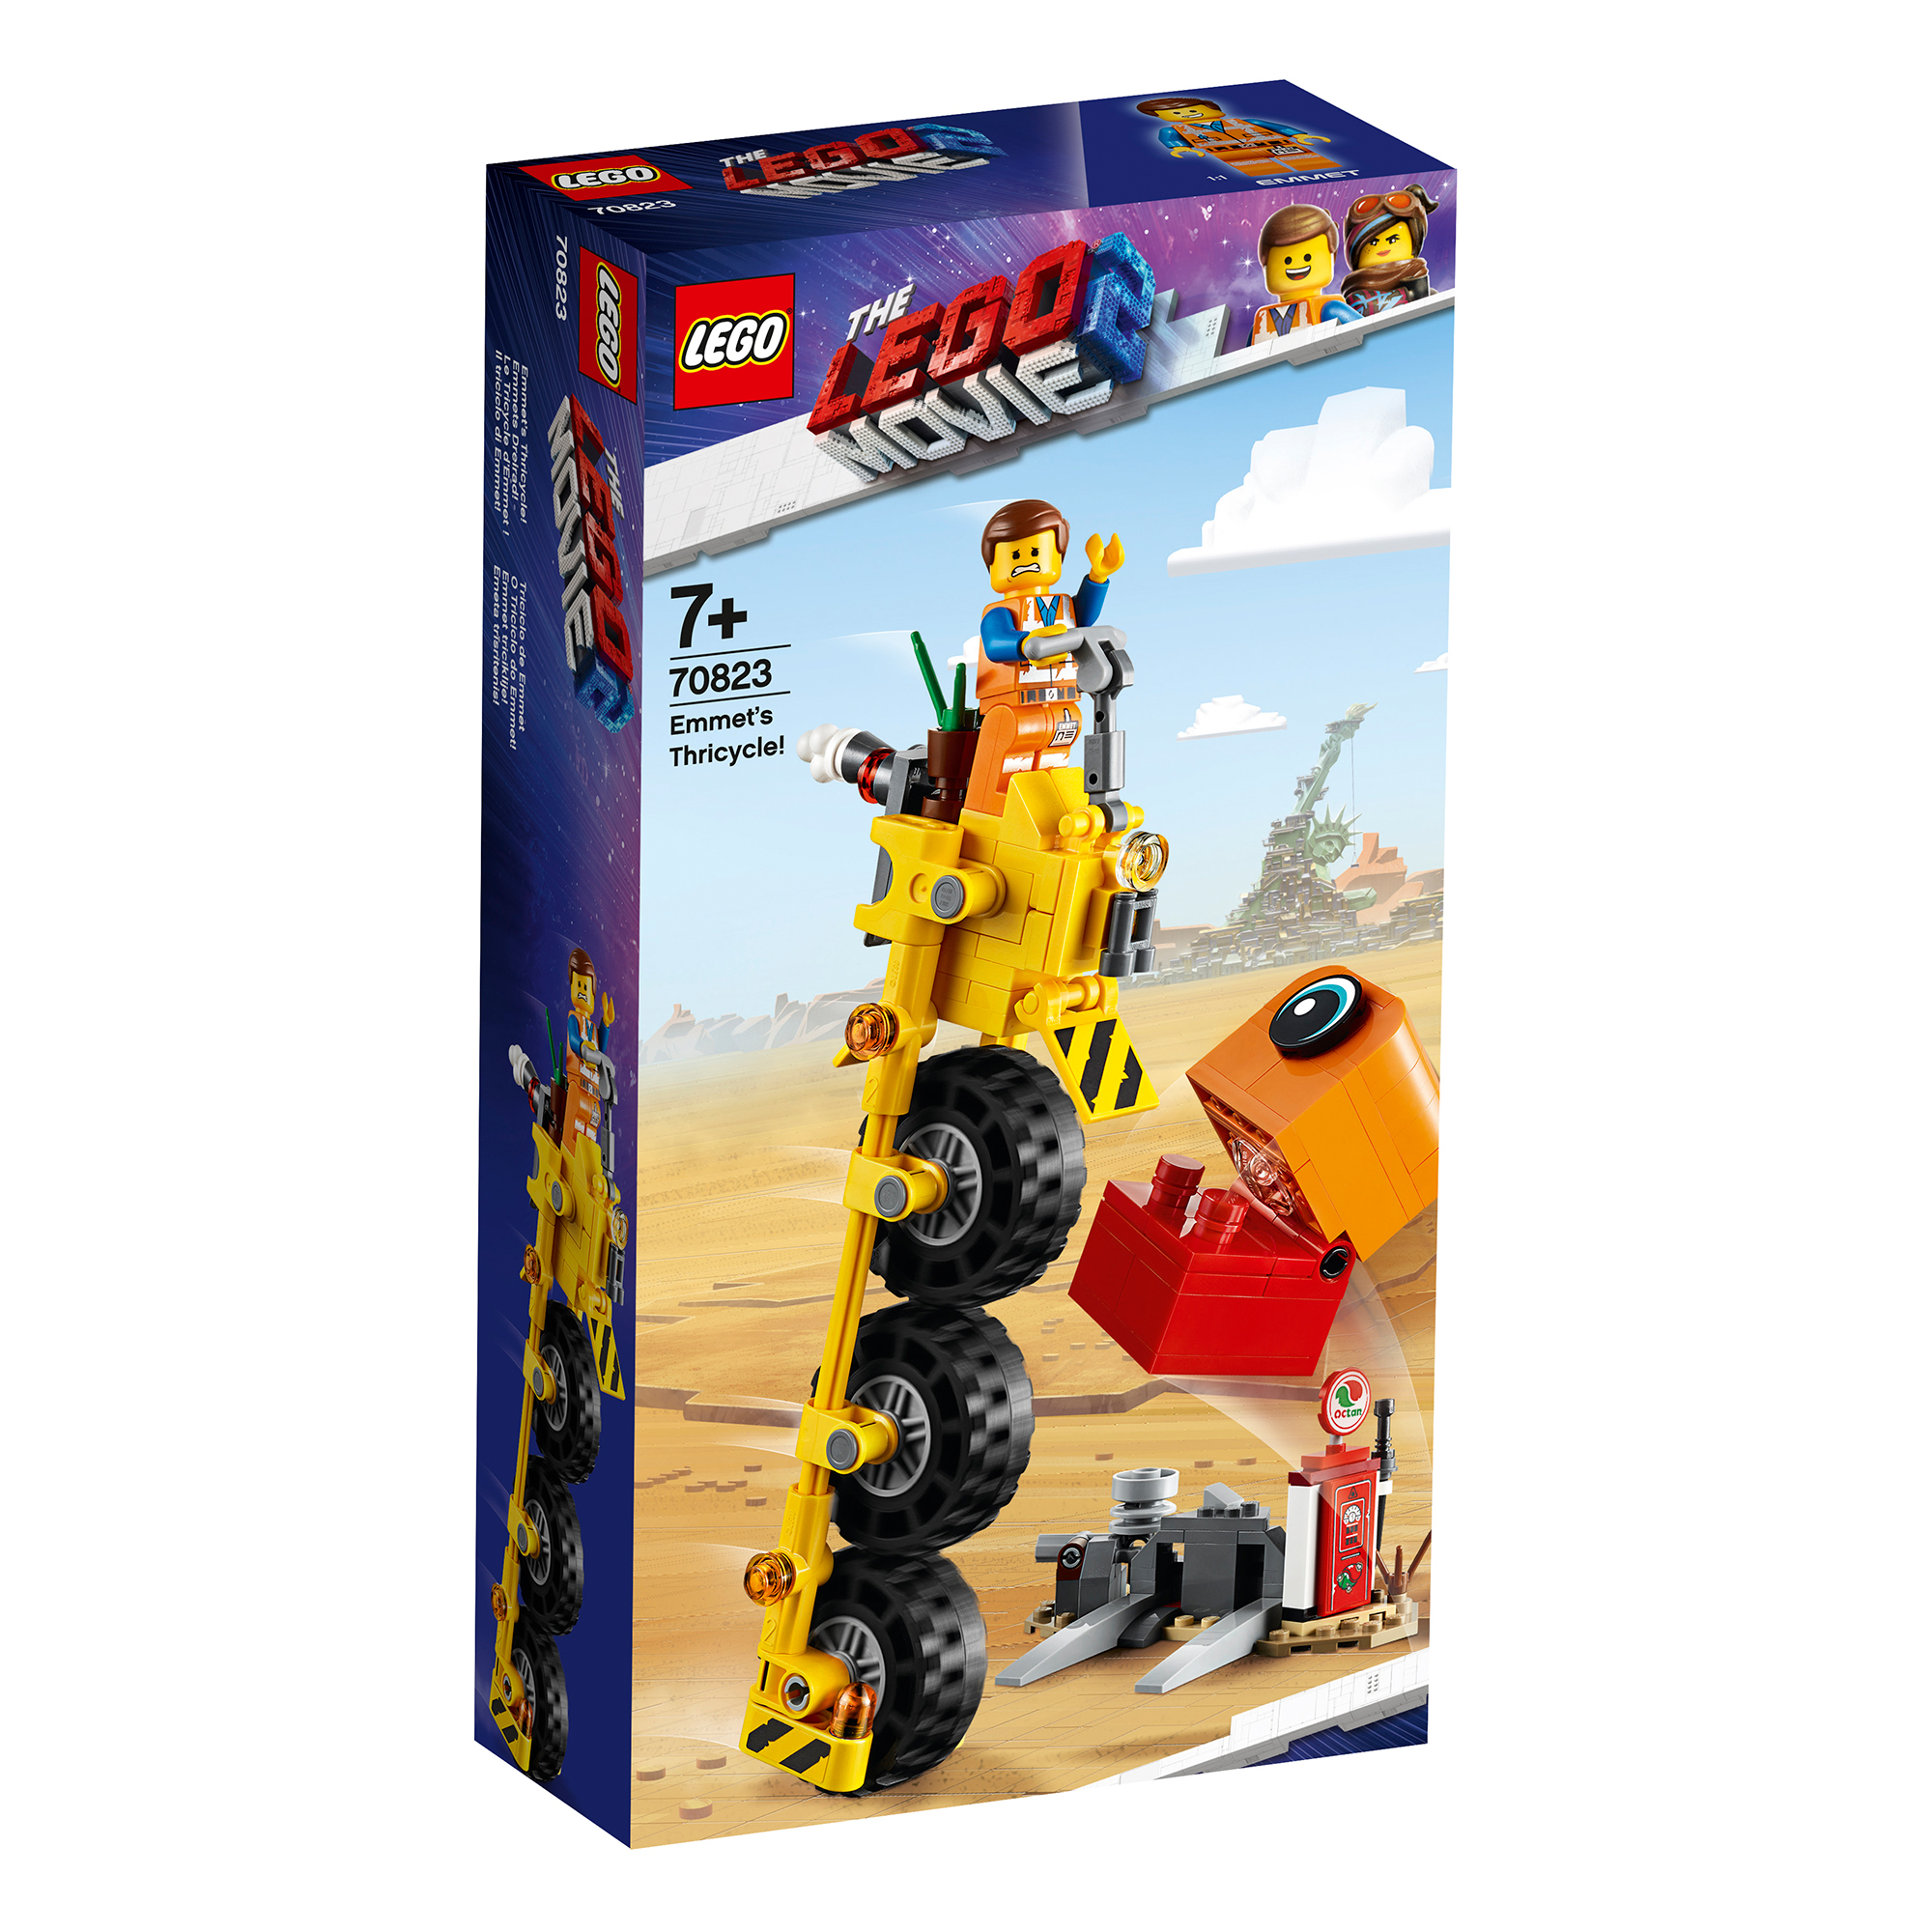 Picture of LEGO Movie 2 Emmet's Thricycle 70823